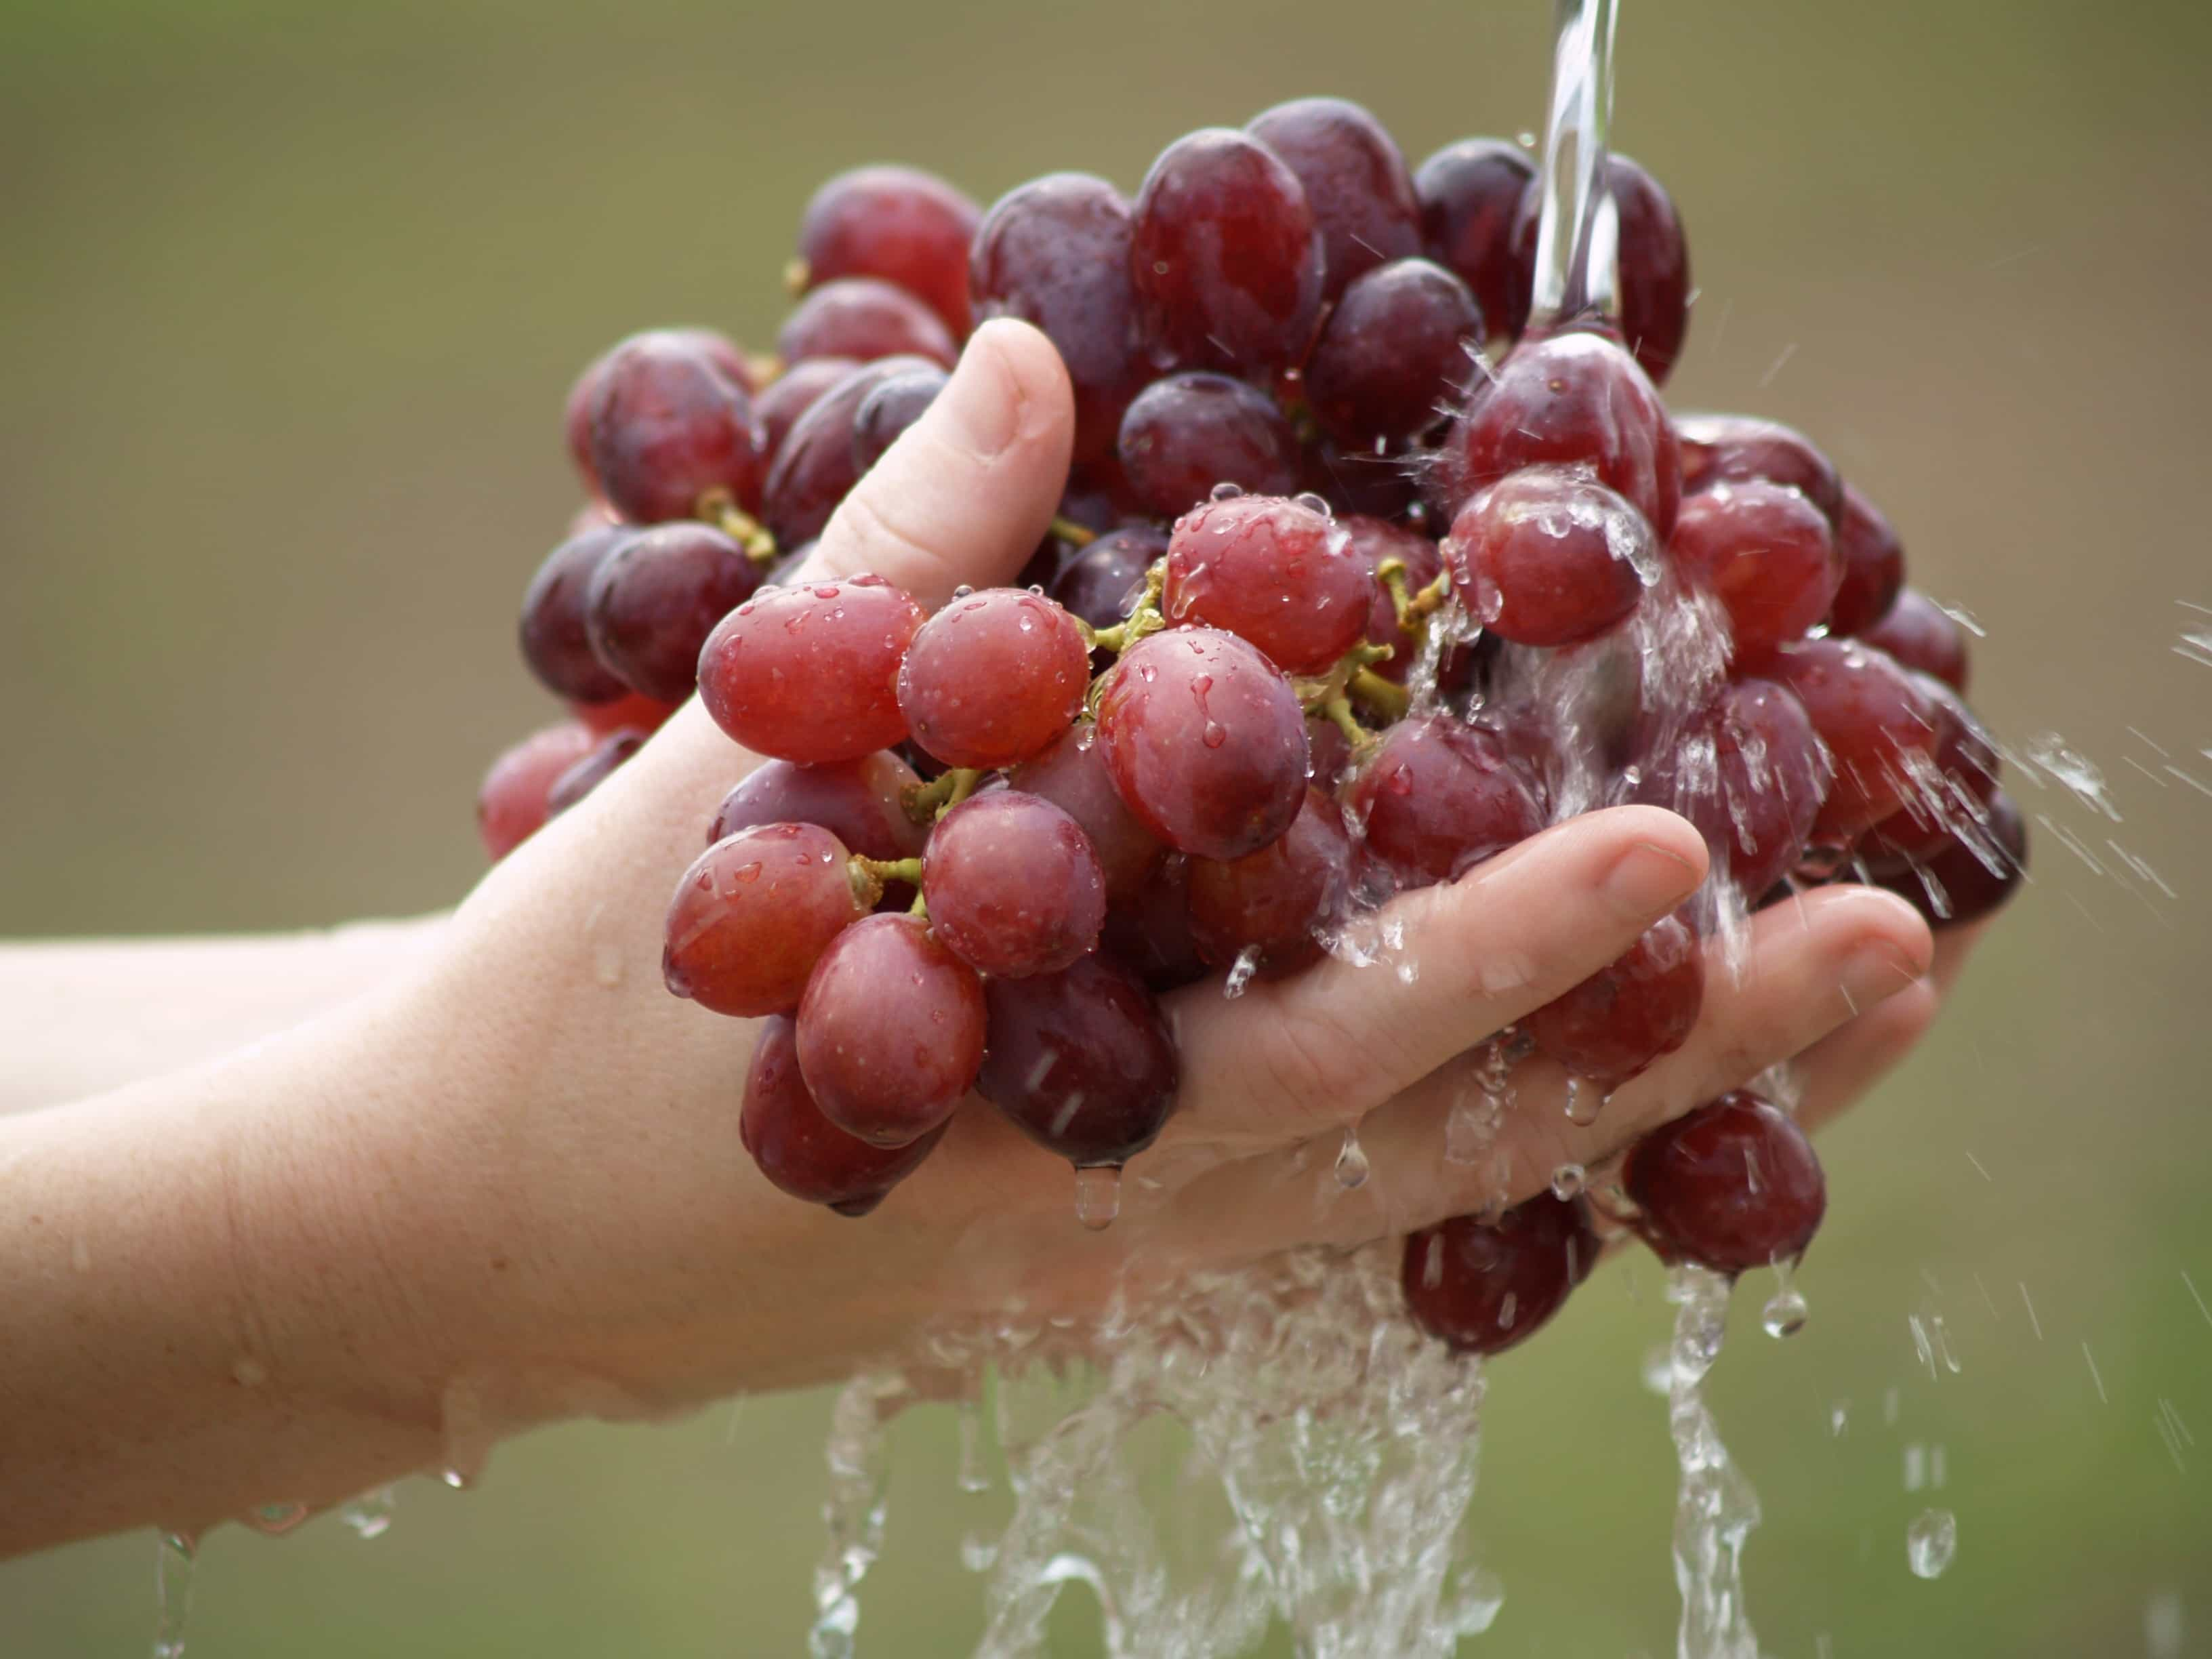 hands_grapes_washing